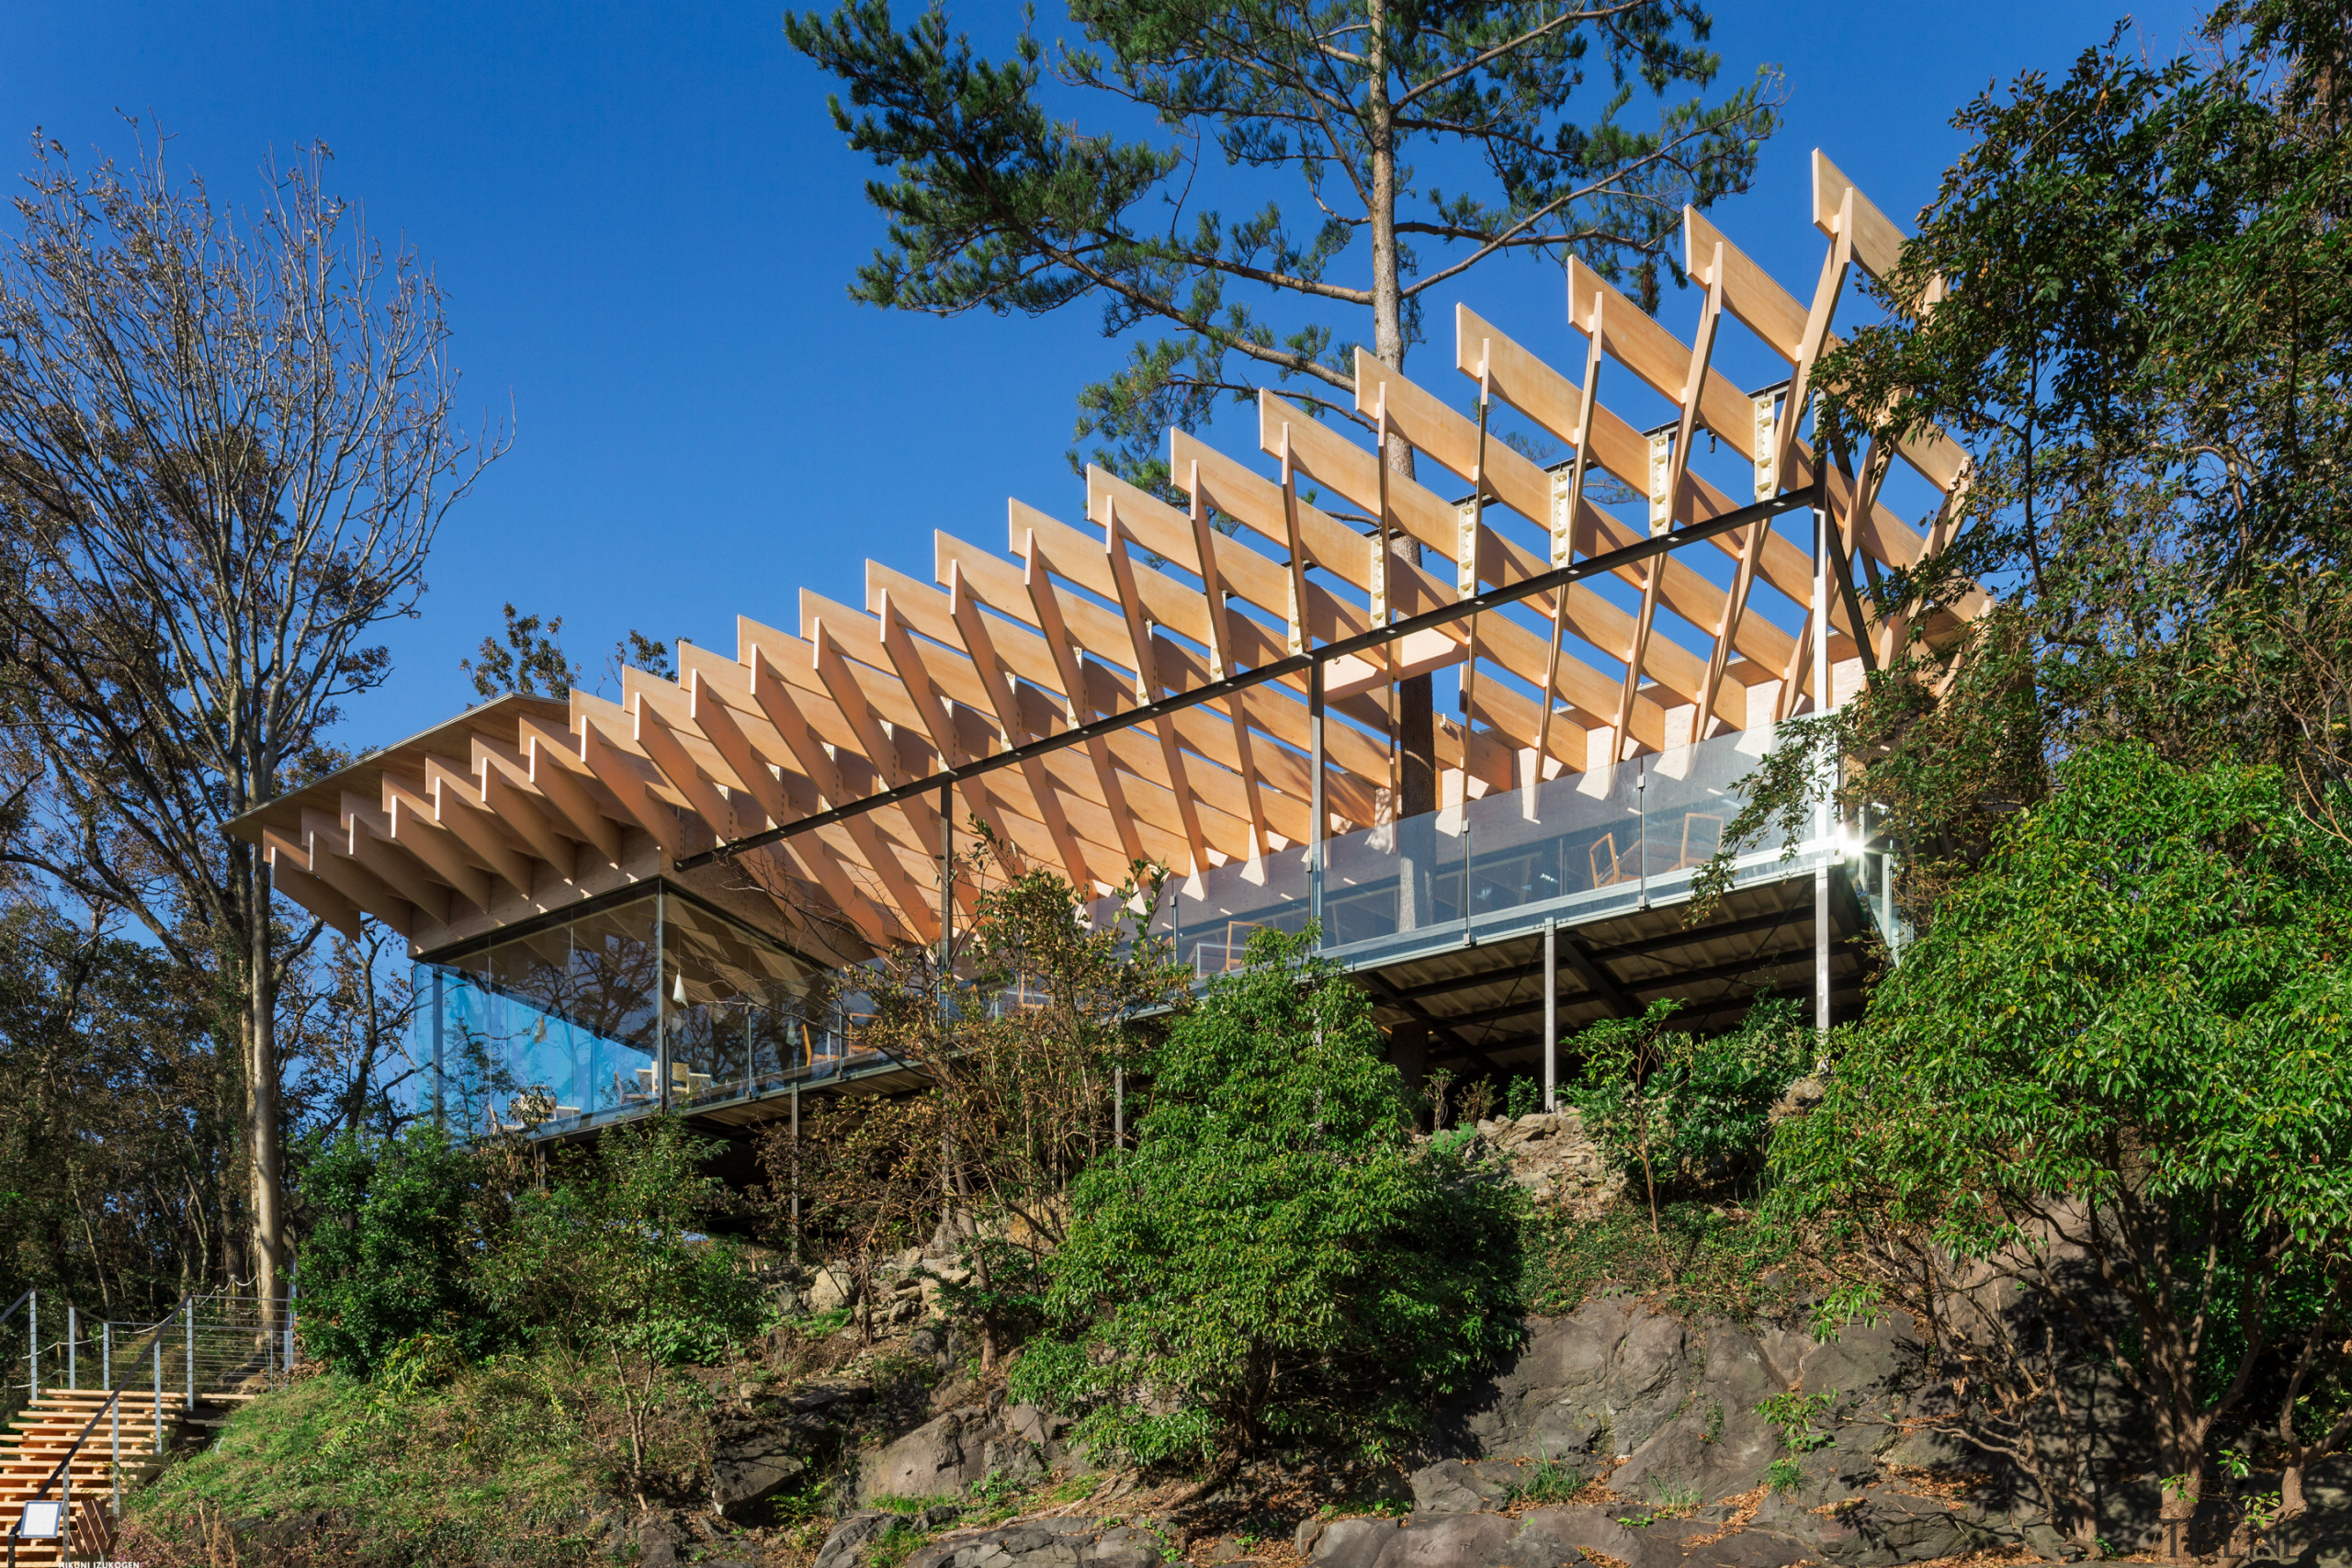 For this restaurant project, architects Kengo Kuma produced brown